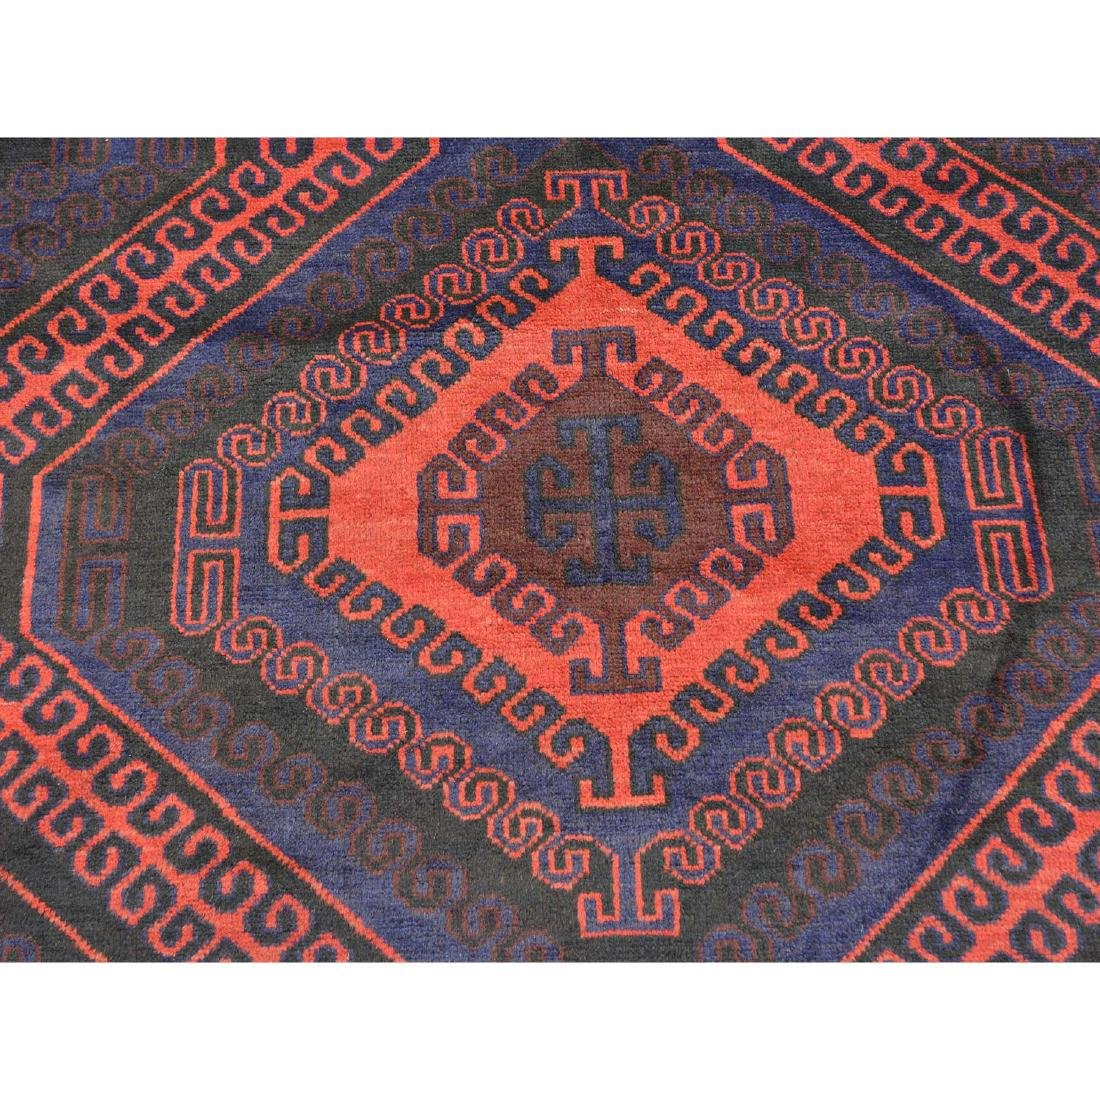 Tribal Design Persian Baluch Hand Made Rug 6.7x10.8 - 4